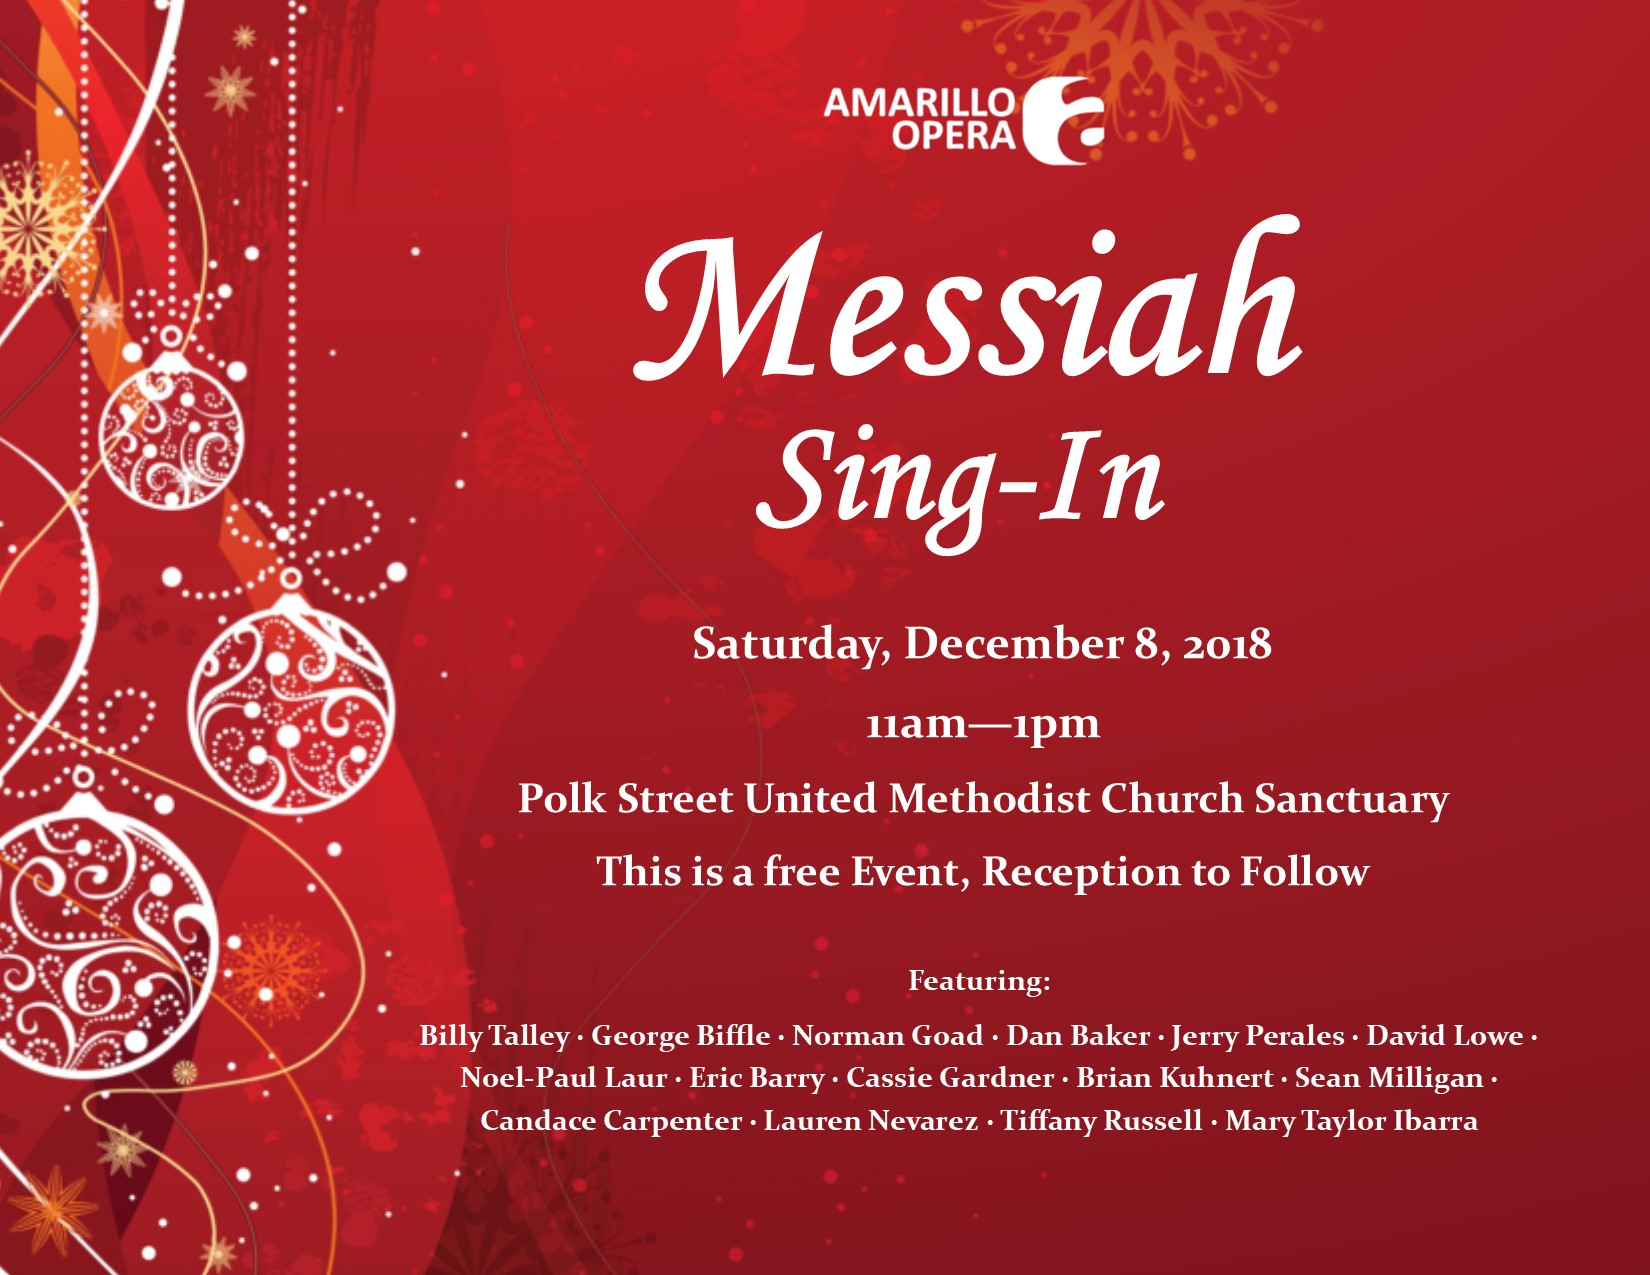 Messiah Sing-In - December 8, 2018 @ 11amPolk Street United Methodist Church, SanctuaryThis is a free event, no tickets requiredA reception to follow